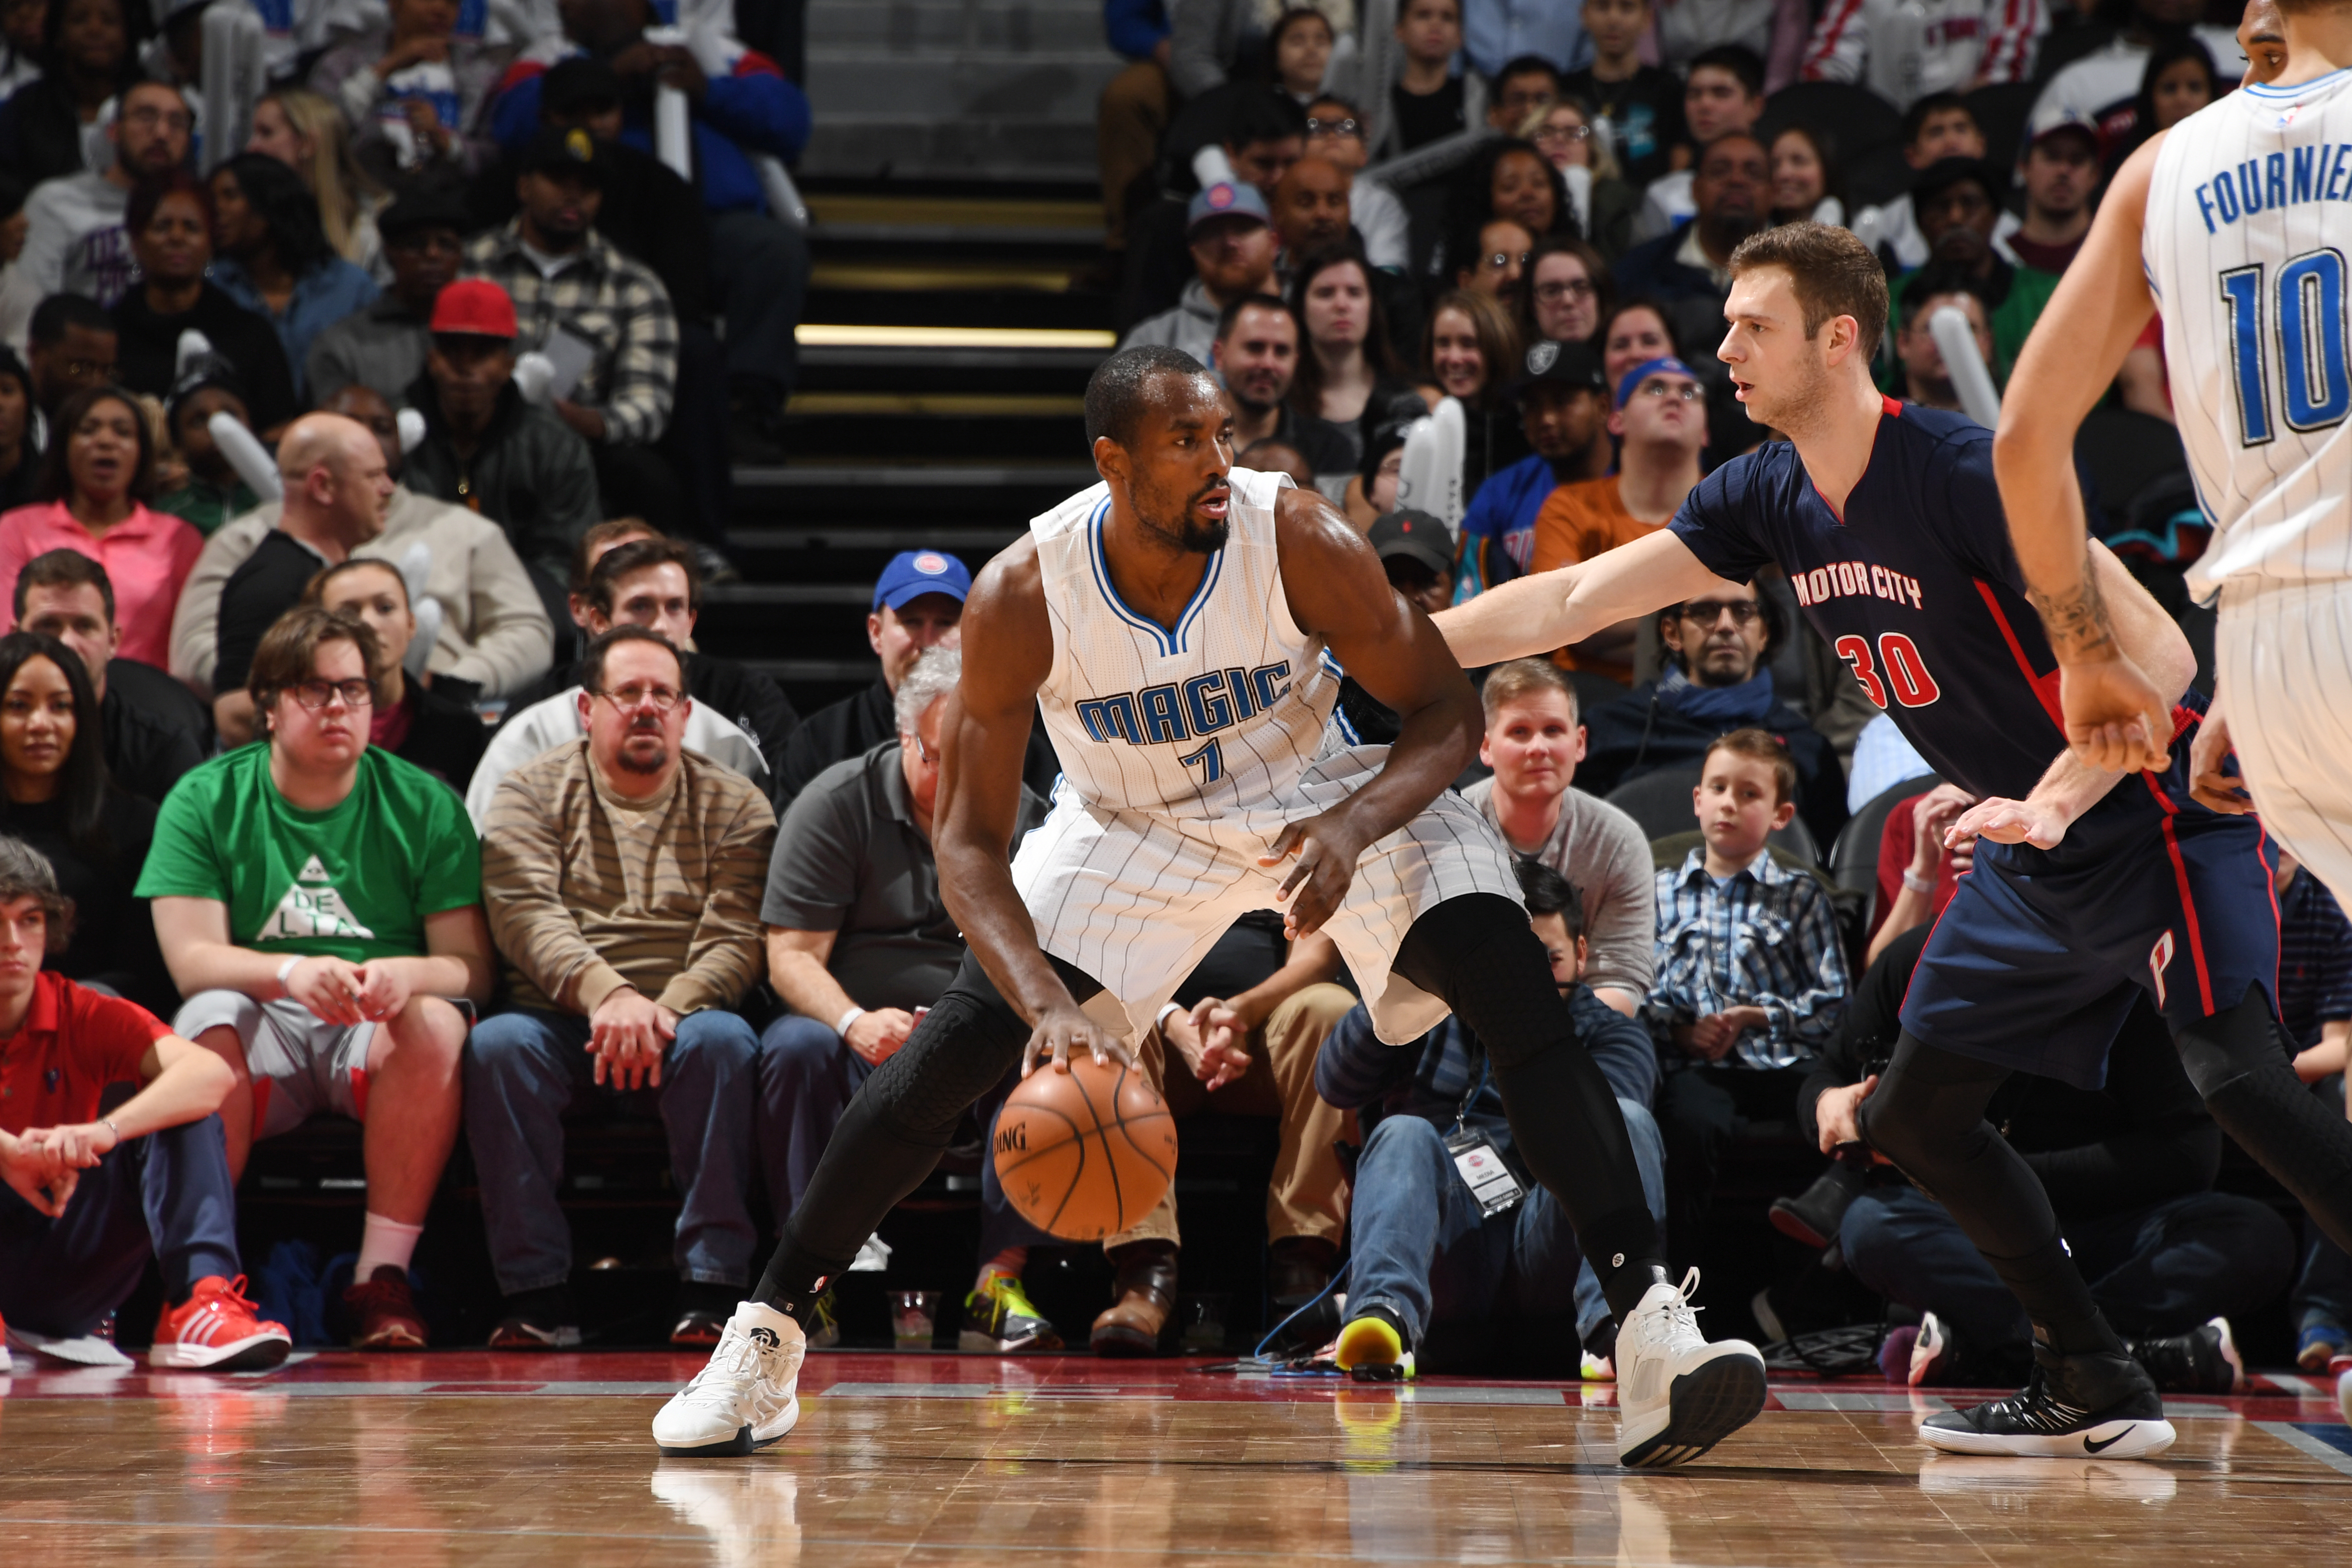 AUBURN HILLS, MI - DECEMBER 4:  Serge Ibaka #7 of the Orlando Magic handles the ball during a game against the Detroit Pistons on December 4, 2016 at The Palace of Auburn Hills in Auburn Hills, Michigan. NOTE TO USER: User expressly acknowledges and agrees that, by downloading and/or using this photograph, user is consenting to the terms and conditions of the Getty Images License Agreement. Mandatory Copyright Notice: Copyright 2016 NBAE (Photo by Chris Schwegler/NBAE via Getty Images)